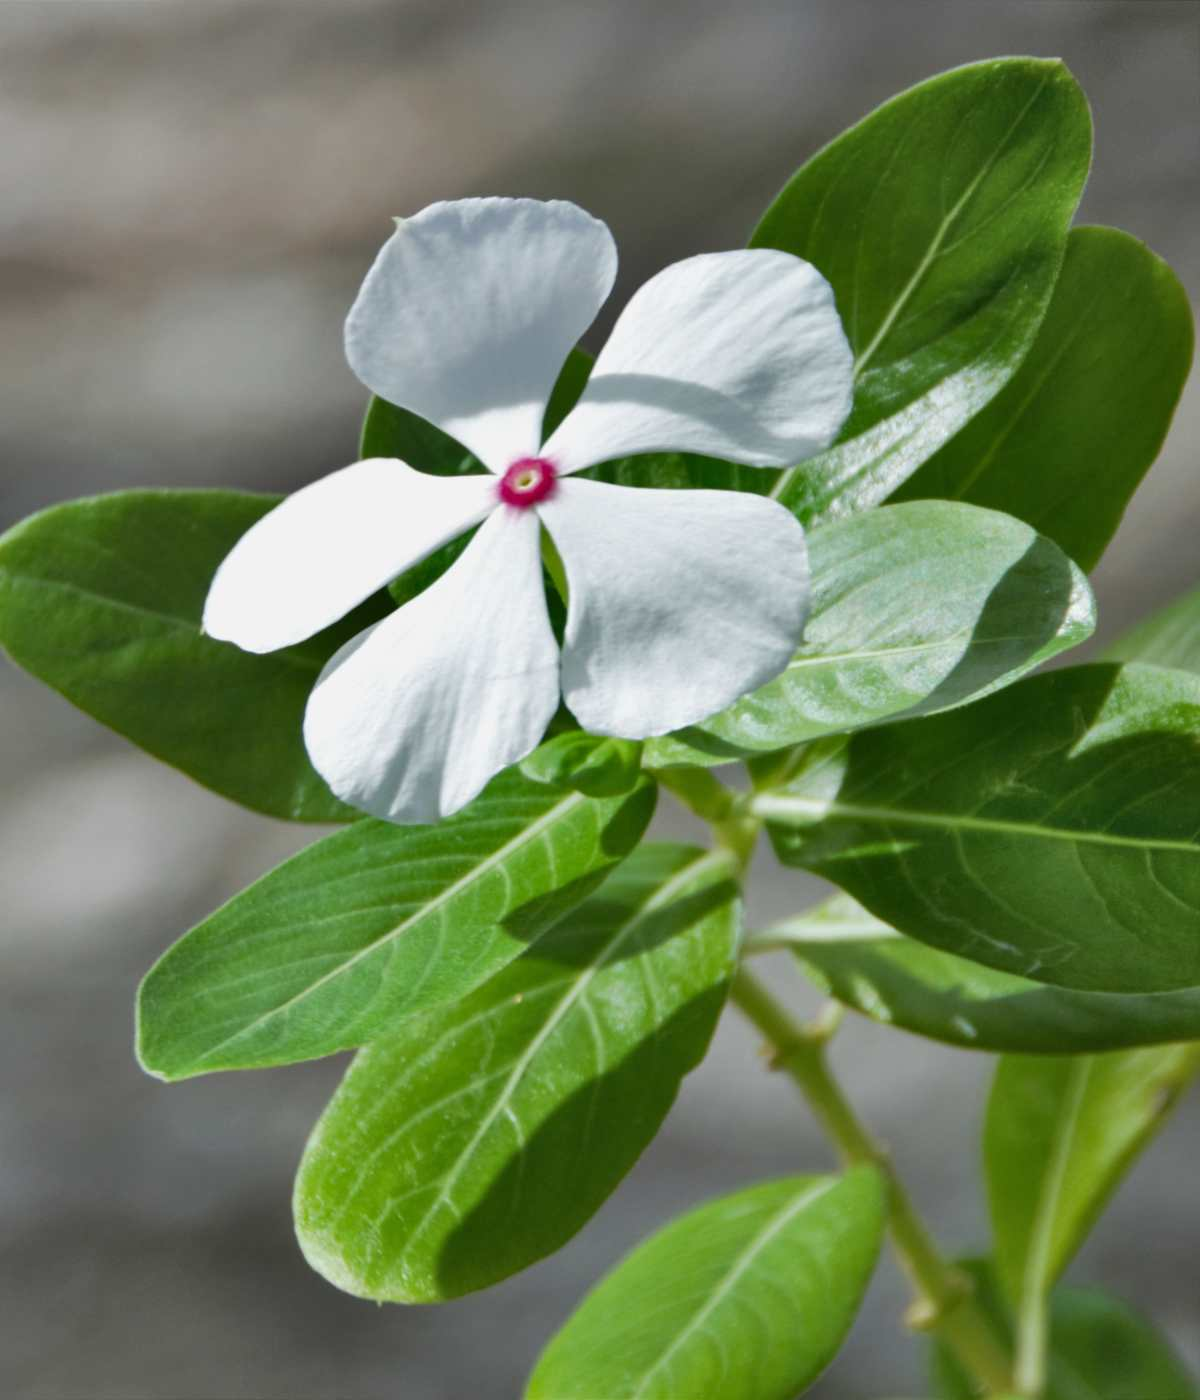 Beautiful madagascar periwinkle sprig